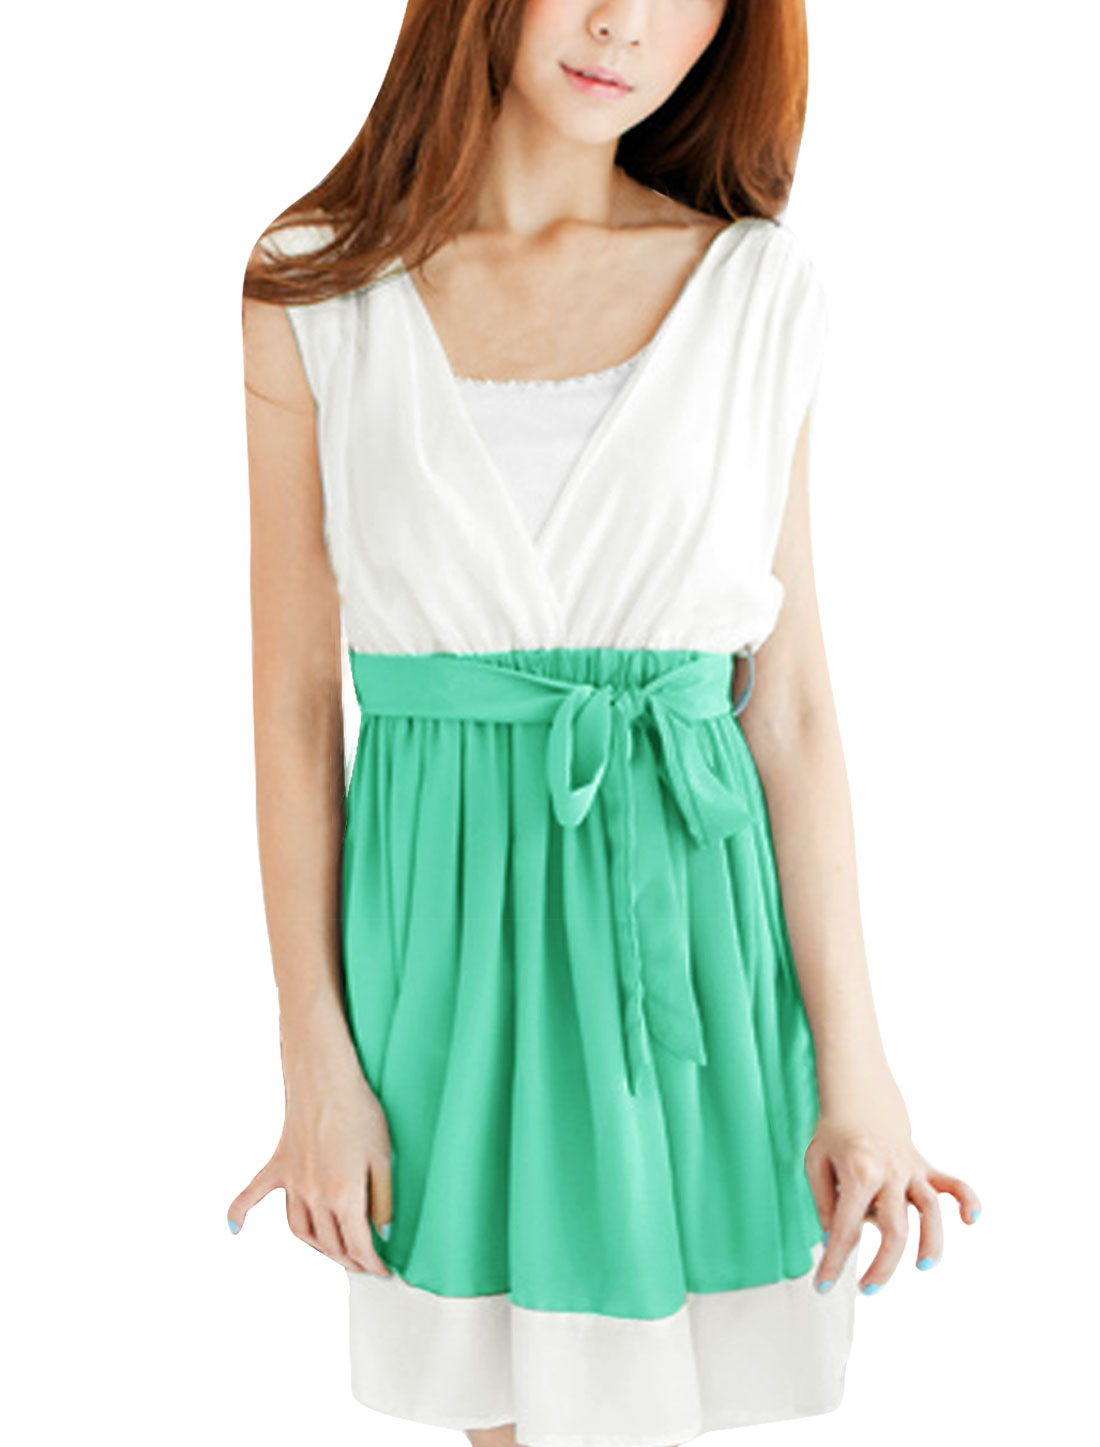 Chic Deep V Neck Sleeveless Green White A-Line Dress L w Tube Top for Lady